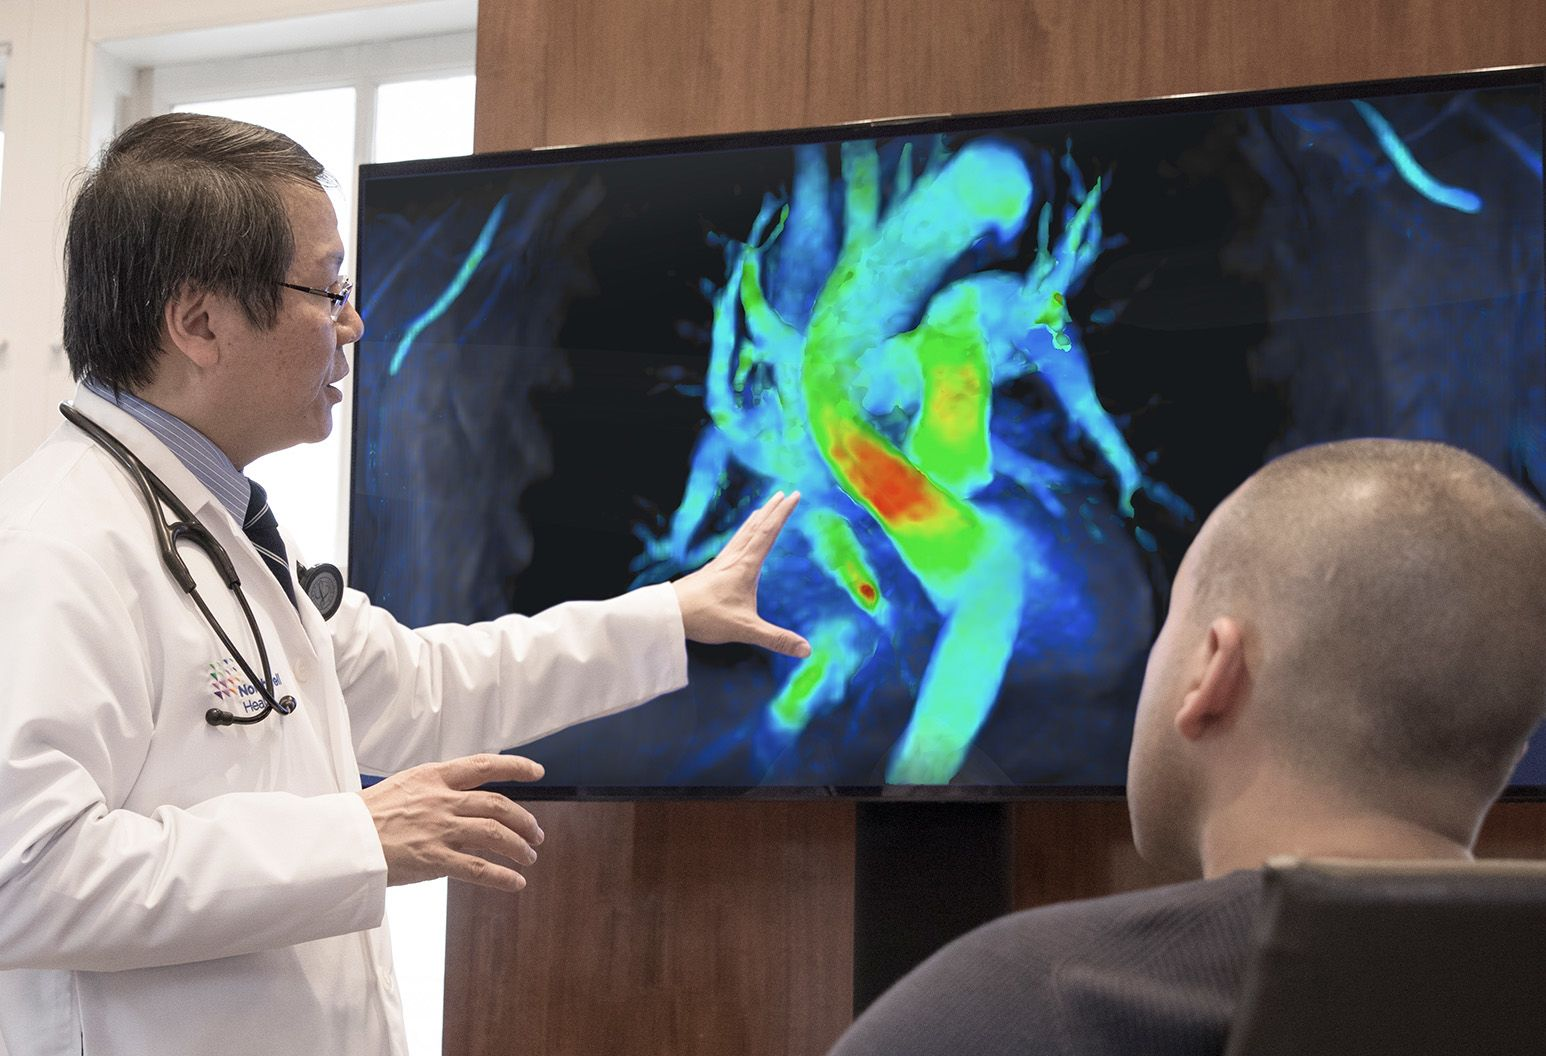 Male doctor in white lab coat points to screen on the wall showing 4D images of the heart to male patient